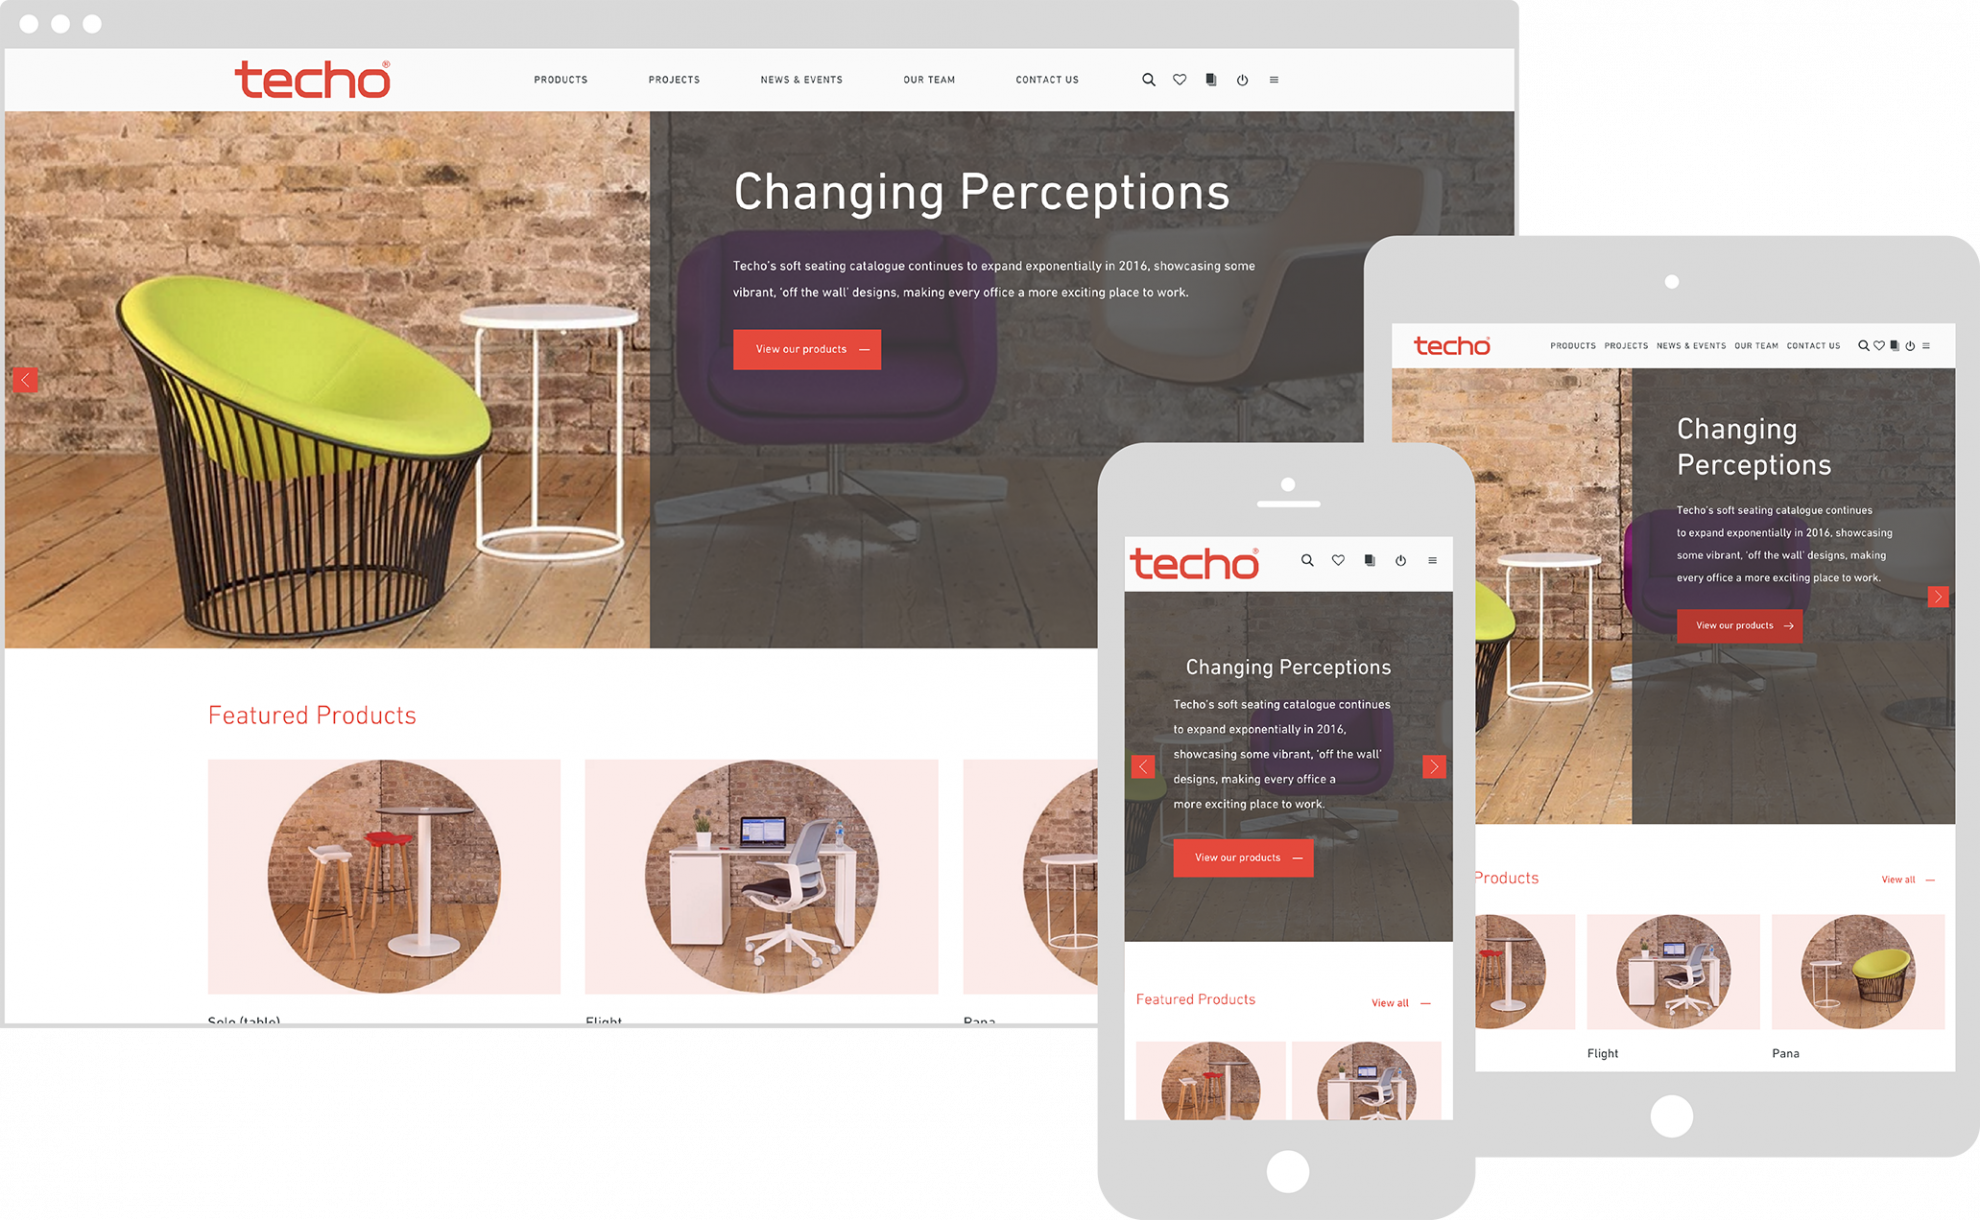 Techo's website shown on various devices